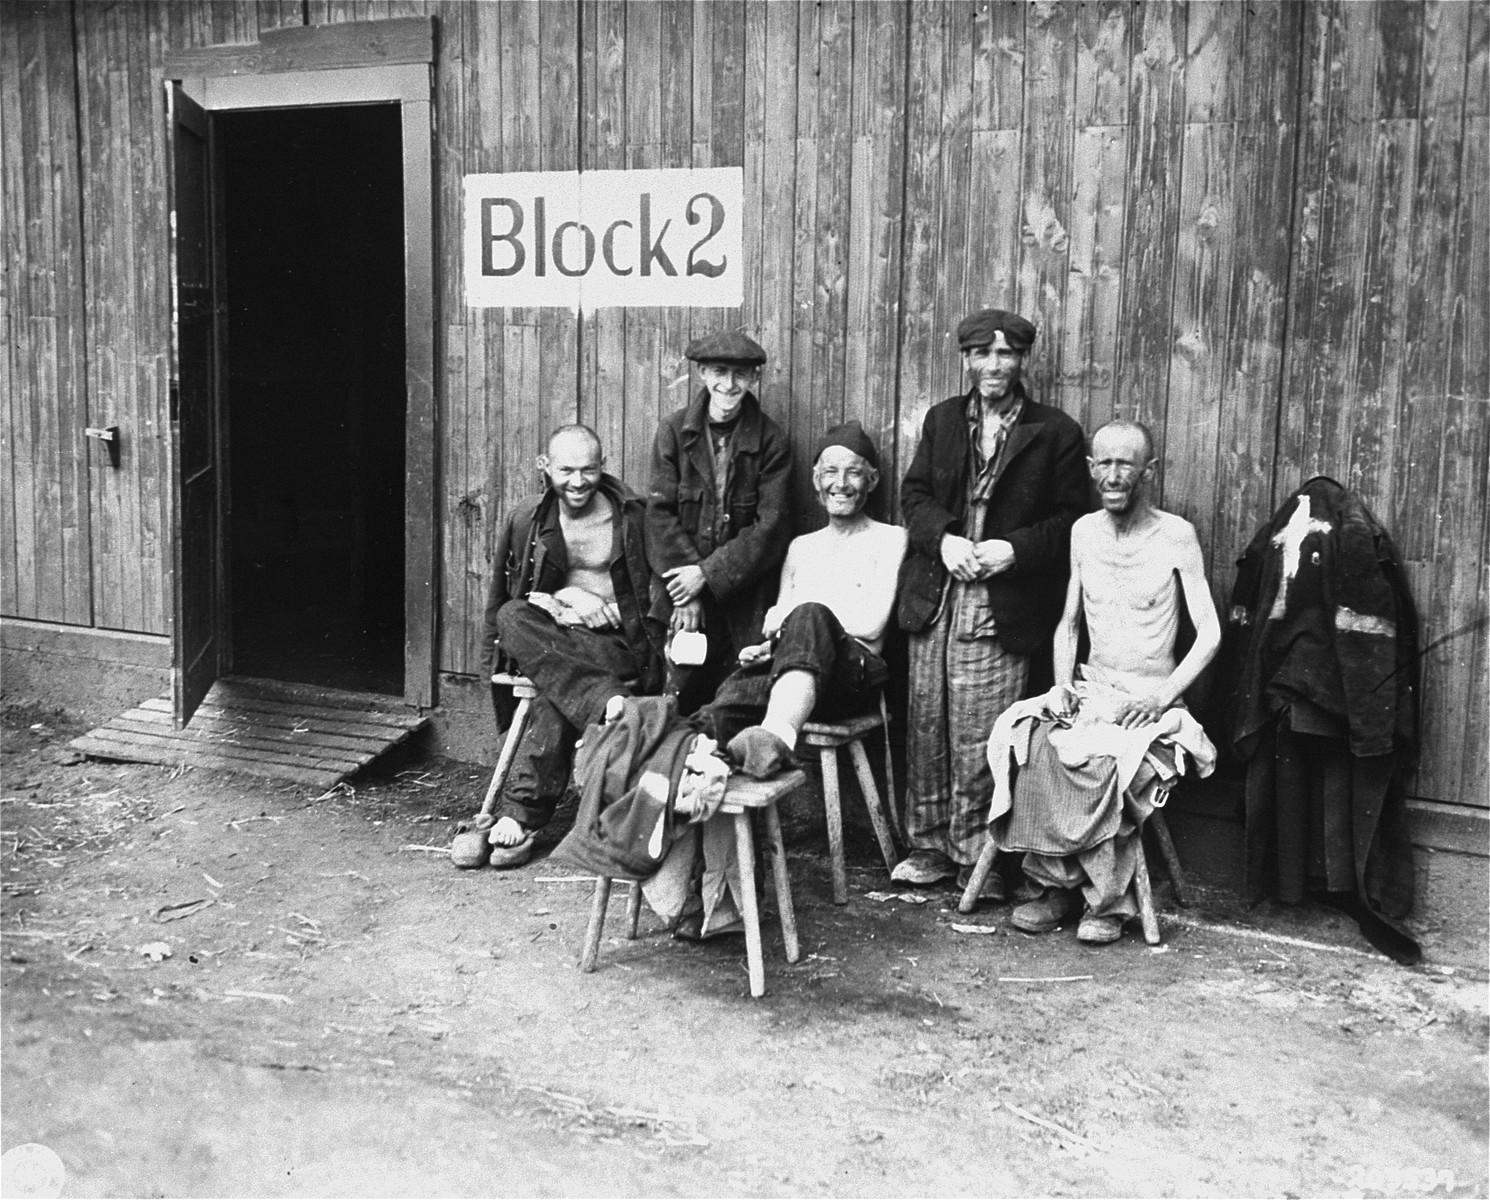 """Five Jewish survivors pose for a U.S. Signal Corps photographer in front of Block 2 in the Hannover-Ahlem concentration camp, a sub-camp of Neuengamme.    The man second from left is Sam Gottesman, now a resident of Pittsburgh, PA in the United States.   The original caption reads """"Liberated, a concentration camp near Hanover, Germany, these five Jews smile happily despite their starved and ill condition.""""  The original Signal Corps caption reads,  """"PNA                                                          EA61998  U.S. TROOPS LIBERATE PRISONERS OF NAZIS Five sick and undernourished Jews are shown before one of the barracks of the Nazi Hanover-Harlen concentration camp near Hanover, Germany, following capture of the city by Ninth U.S. Army troops April 10, 1945.  Hanover is 155 miles west of Berlin.  U.S. Signal Corps Photo ETO-HQ-45-31748. SERVICED BY LONDON OWI TO LIST B-1 CERTIFIED AS PASSED BY SHAEF CENSOR"""